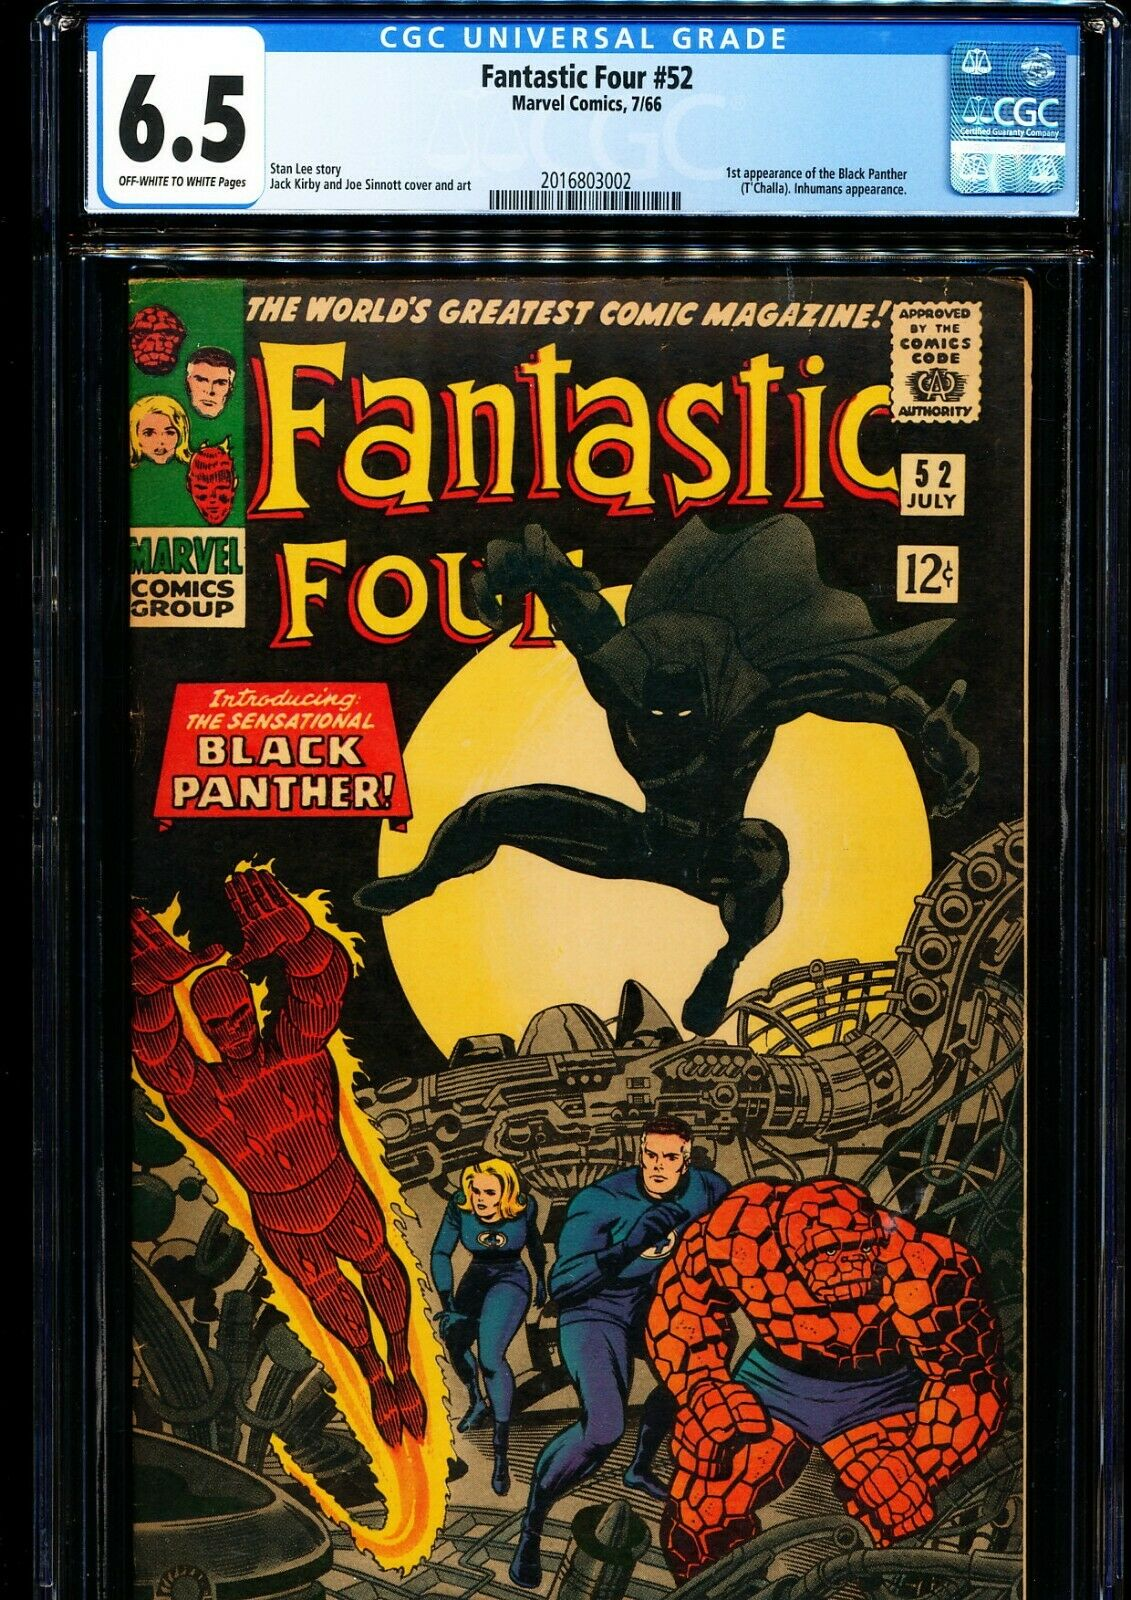 FANTASTIC FOUR #52 CGC 6.5 1st Black Panther (T'Challa)